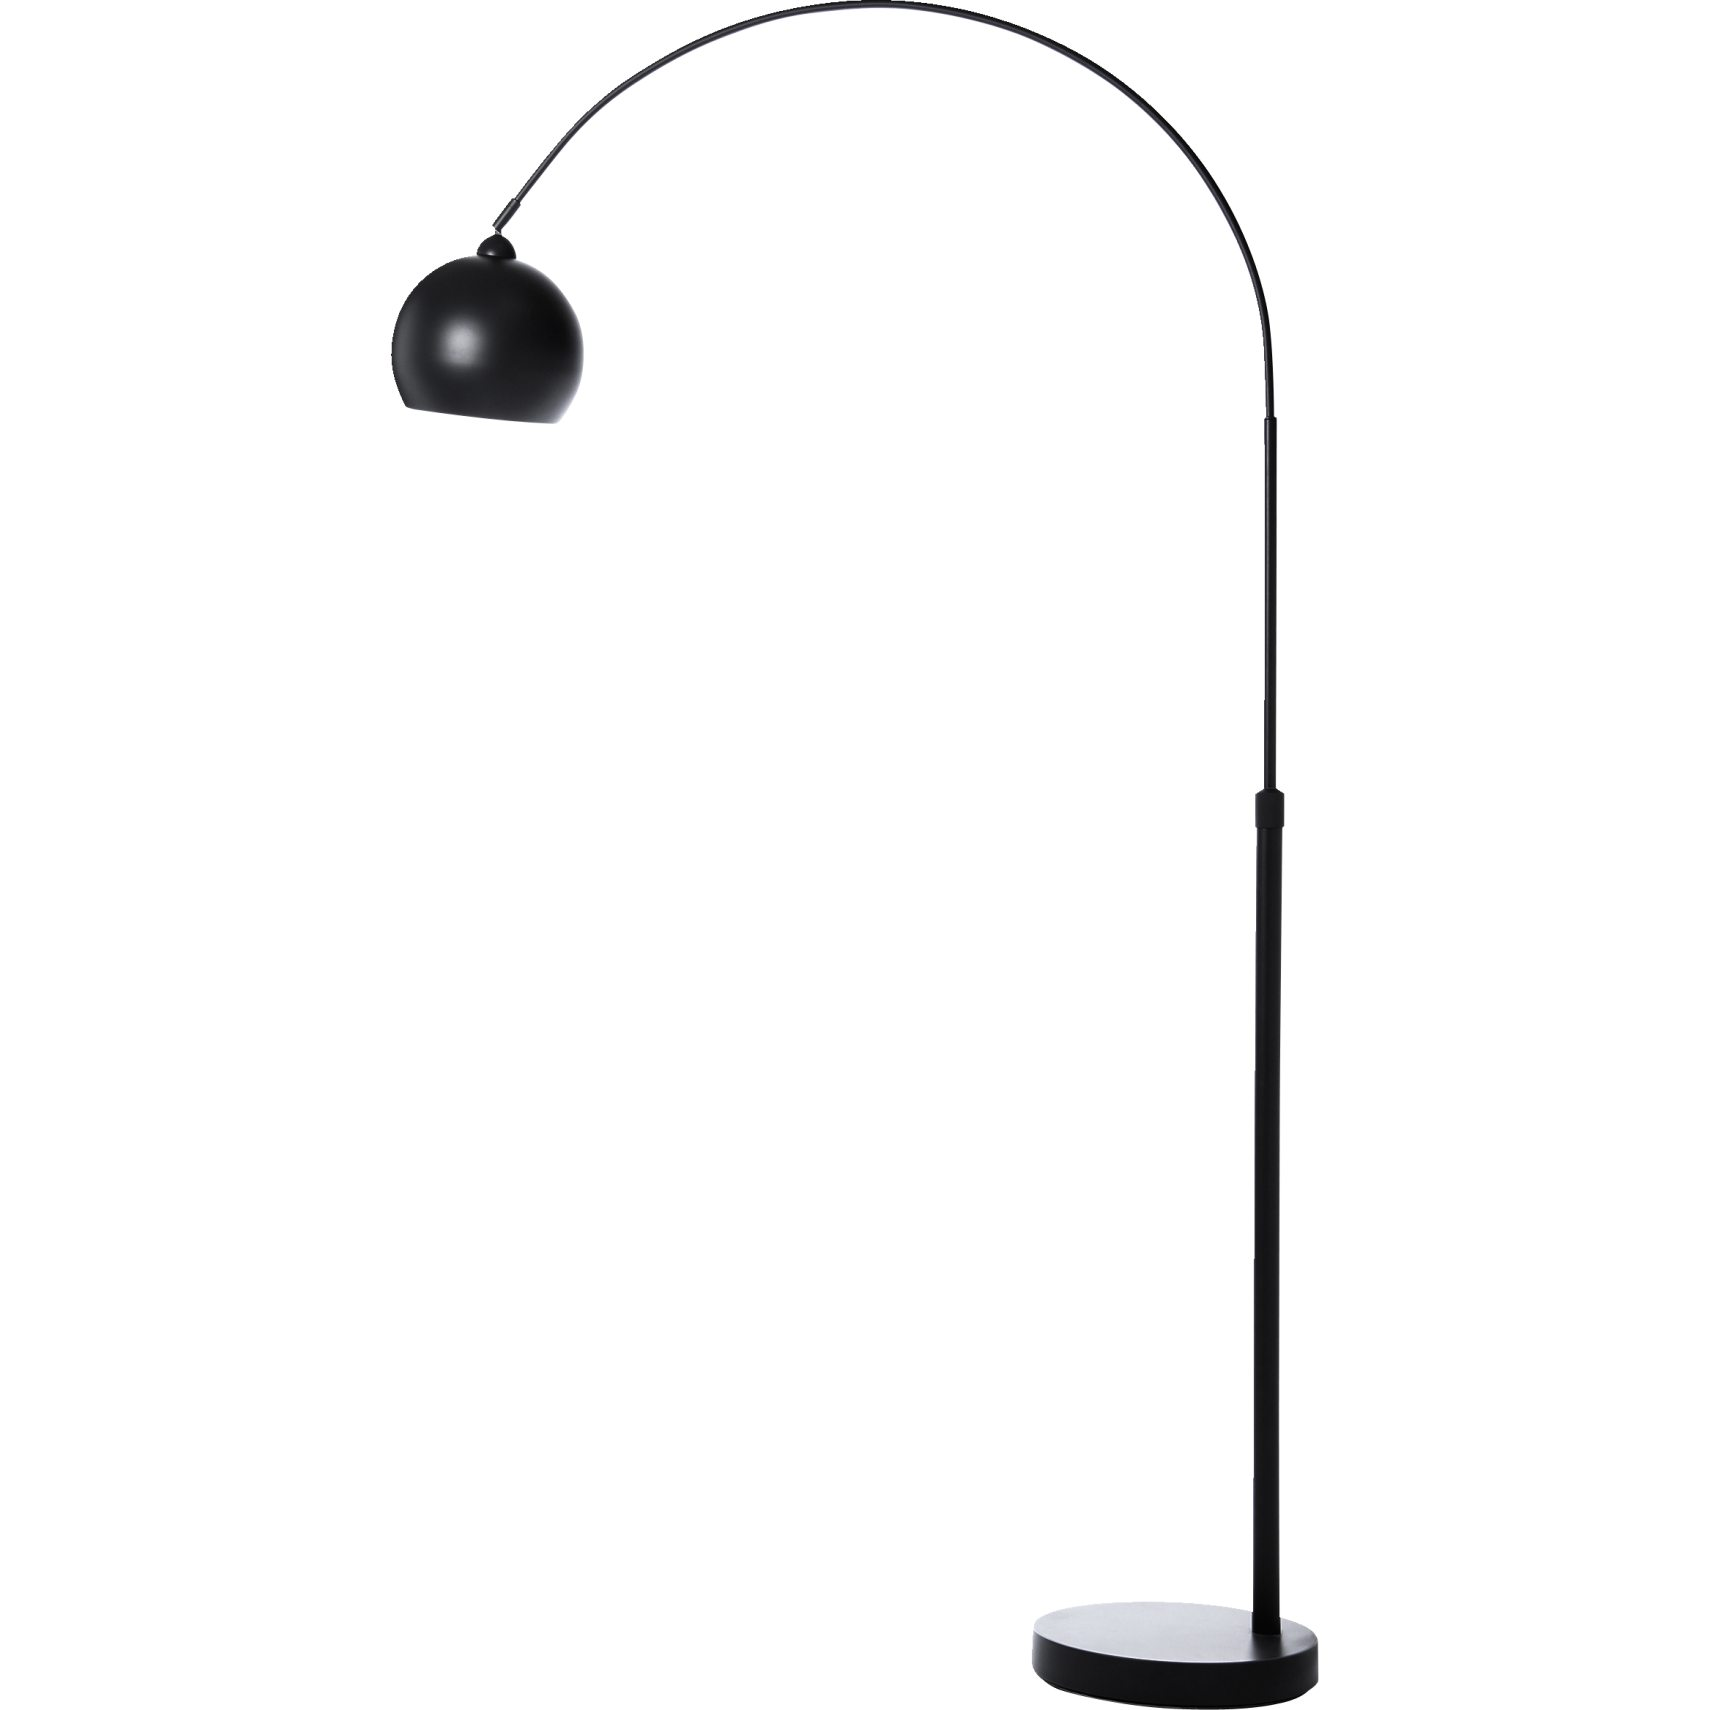 Mini lounge Gulvlampe 190 x 23 cm - Mat sort metalskærm og base og transparent ledning